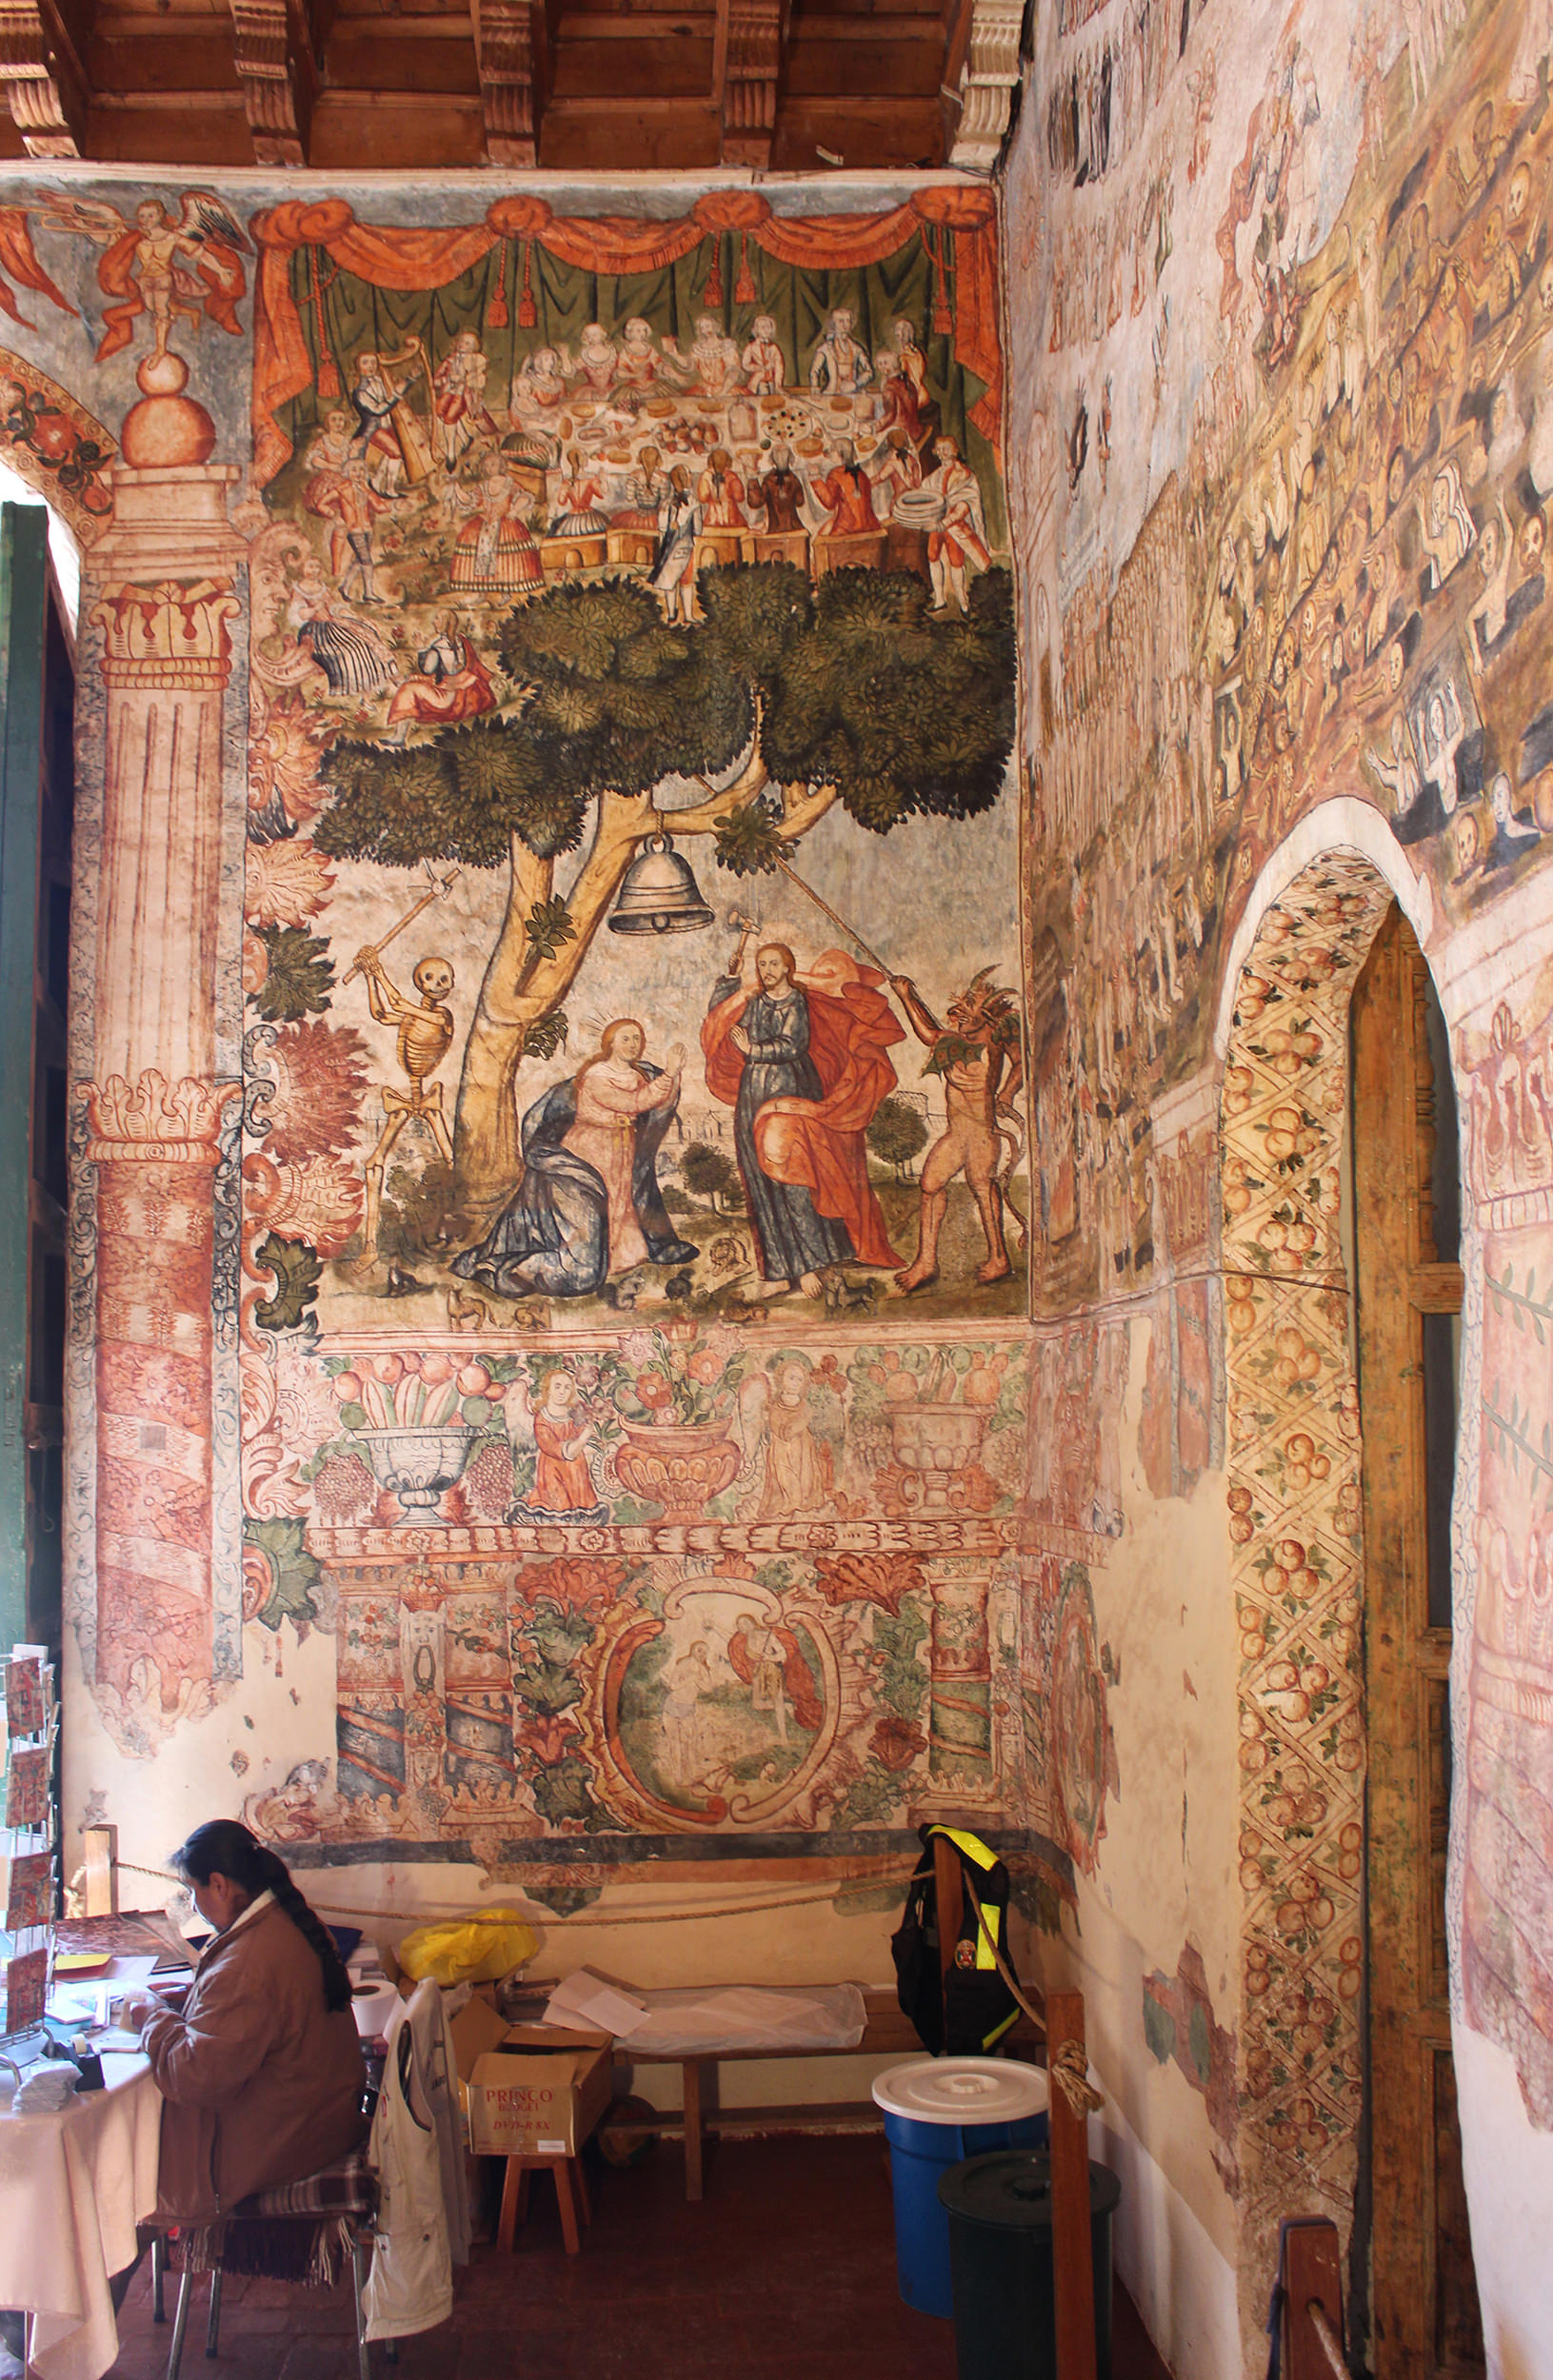 Fig. 42 View of Tree of Life contiguous with Last Judgment, 1802. Murals by Tadeo Escalante, Church of Huaro, Quispicanchi Province. Photo by author.